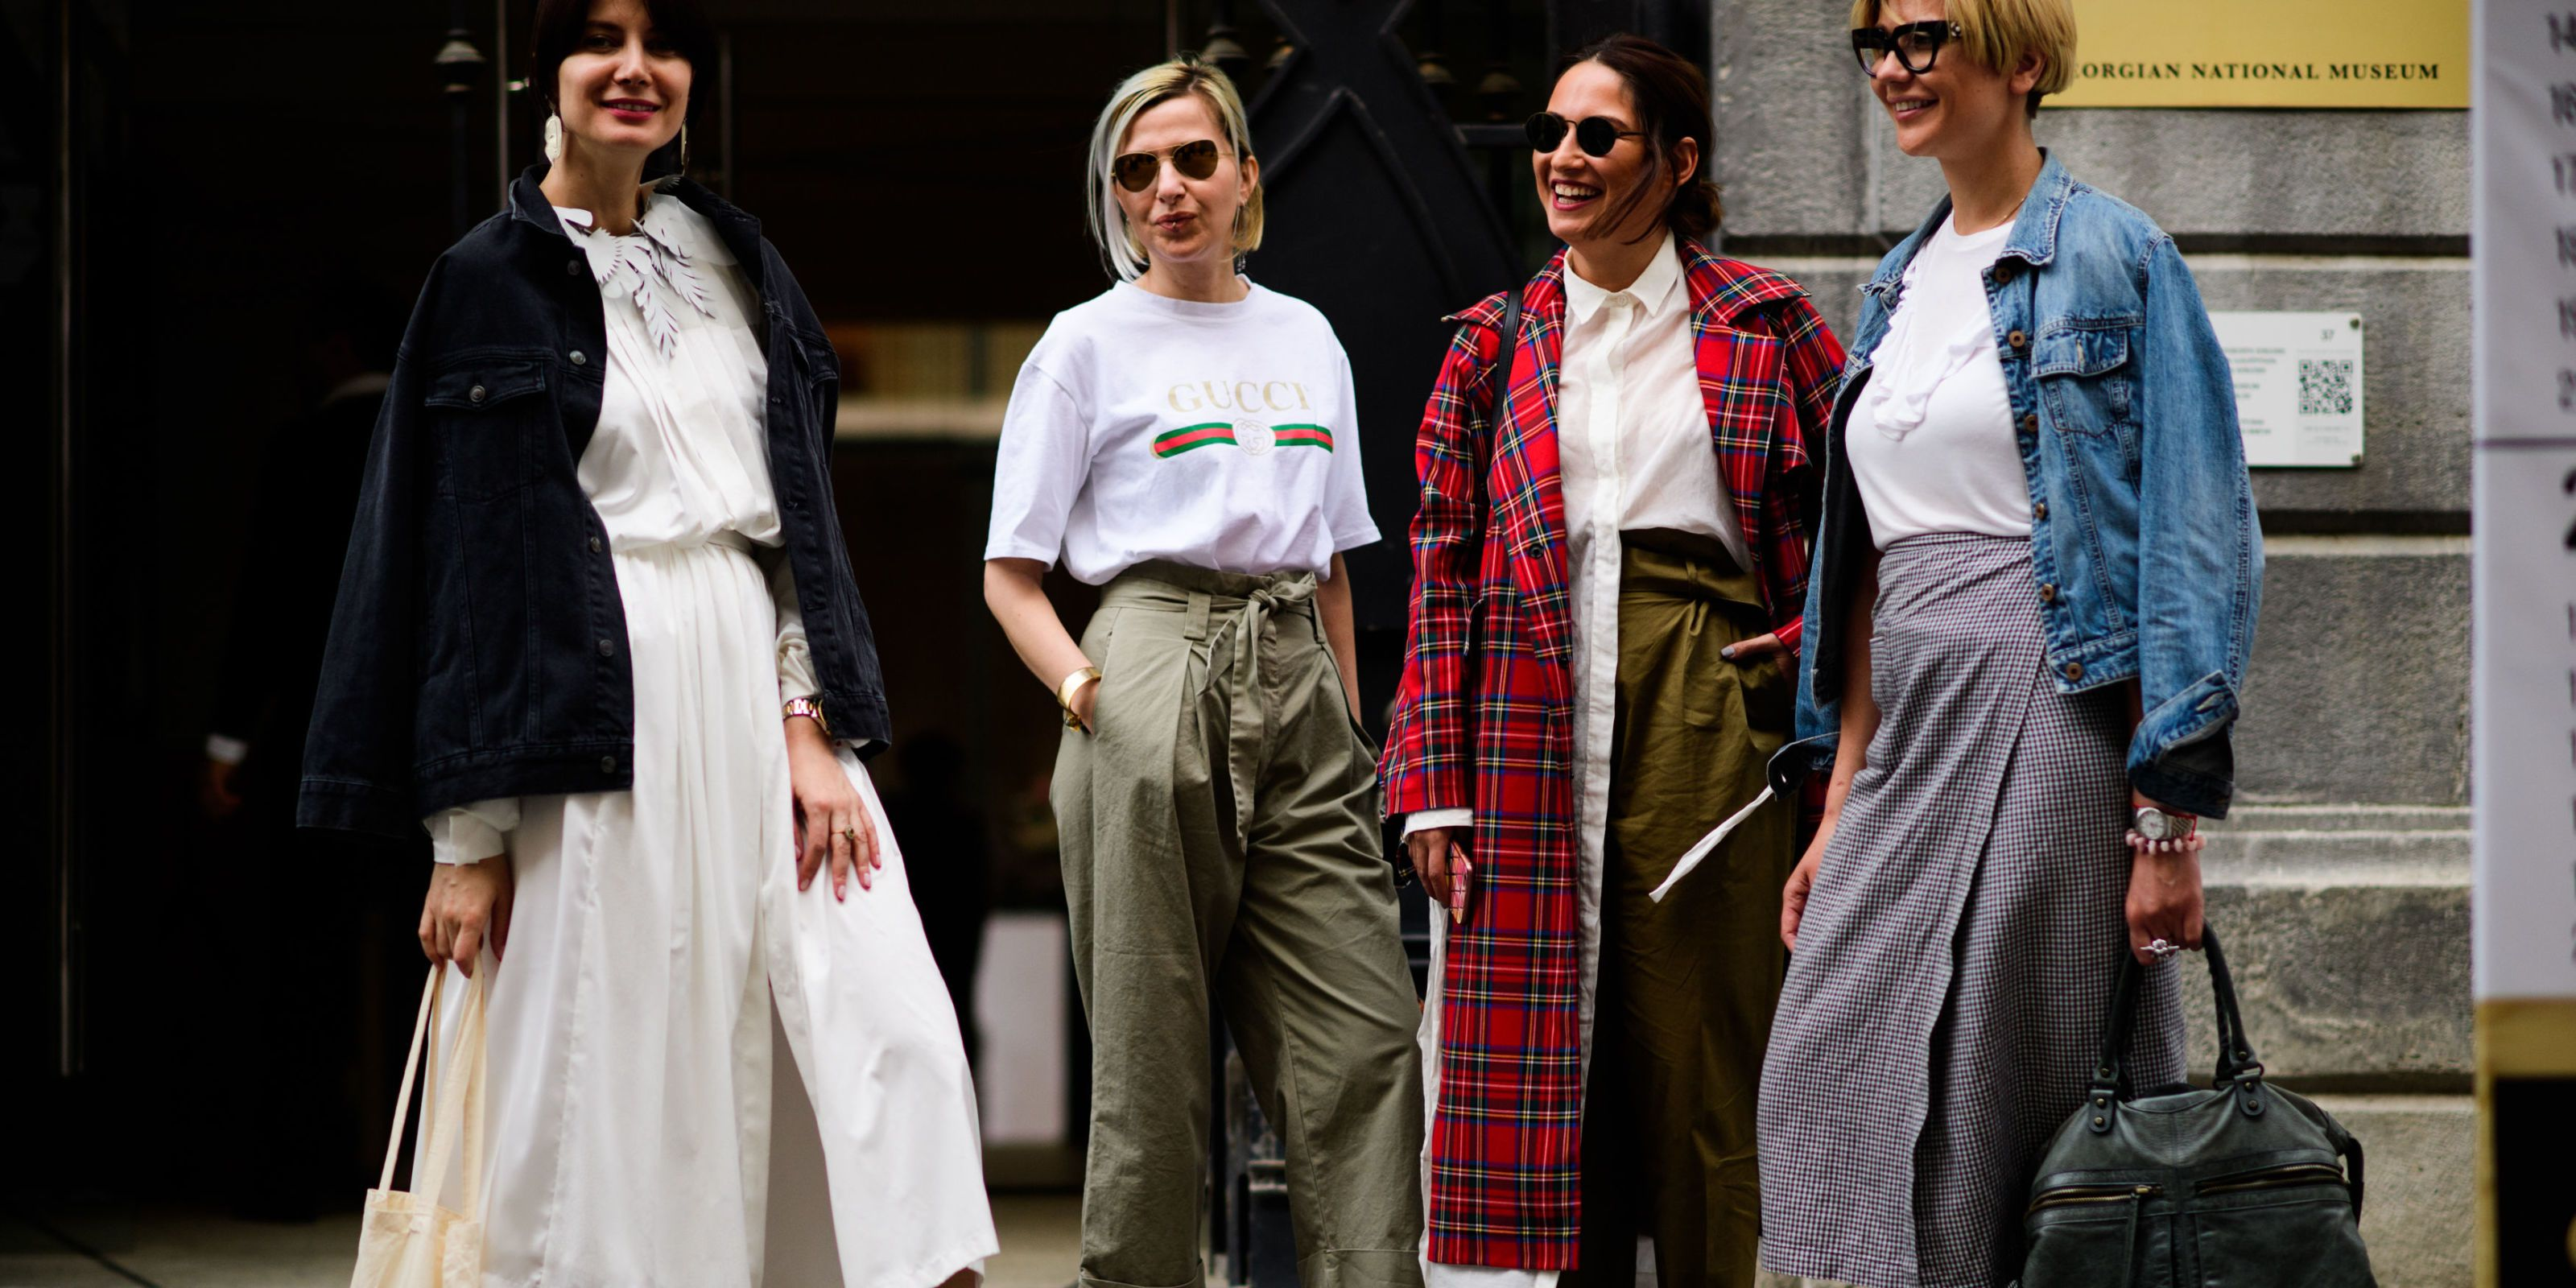 The Best Street Style at Tbilisi Fashion Week